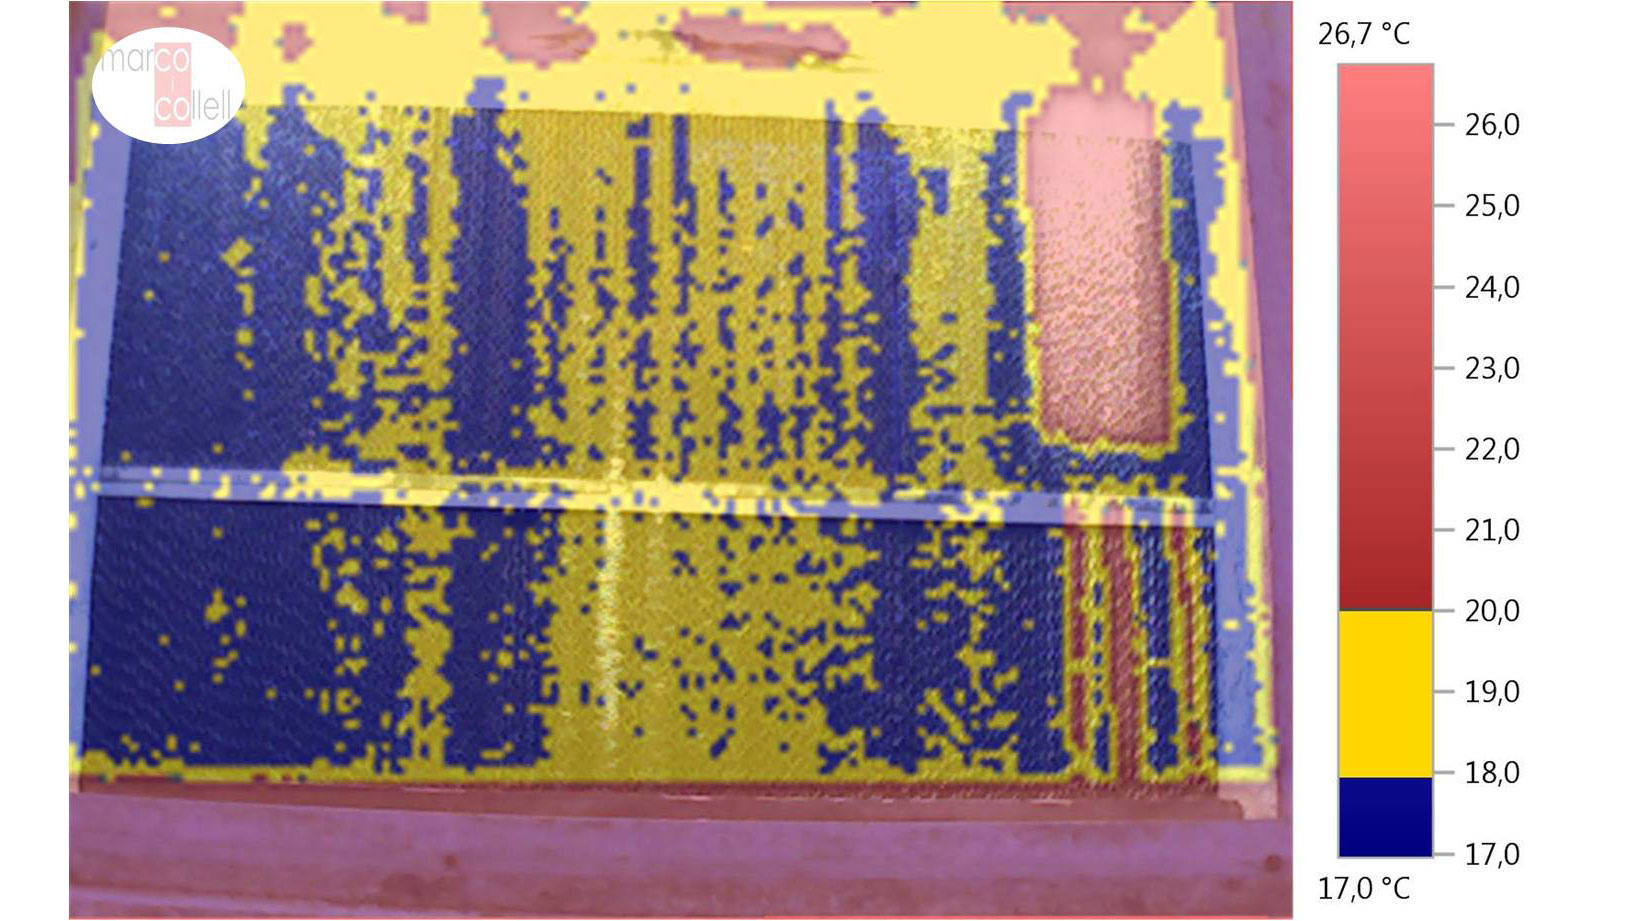 Image superposition (thermal + digital) in order to analyse the working of the cooling panel in the gestation unit (summer).